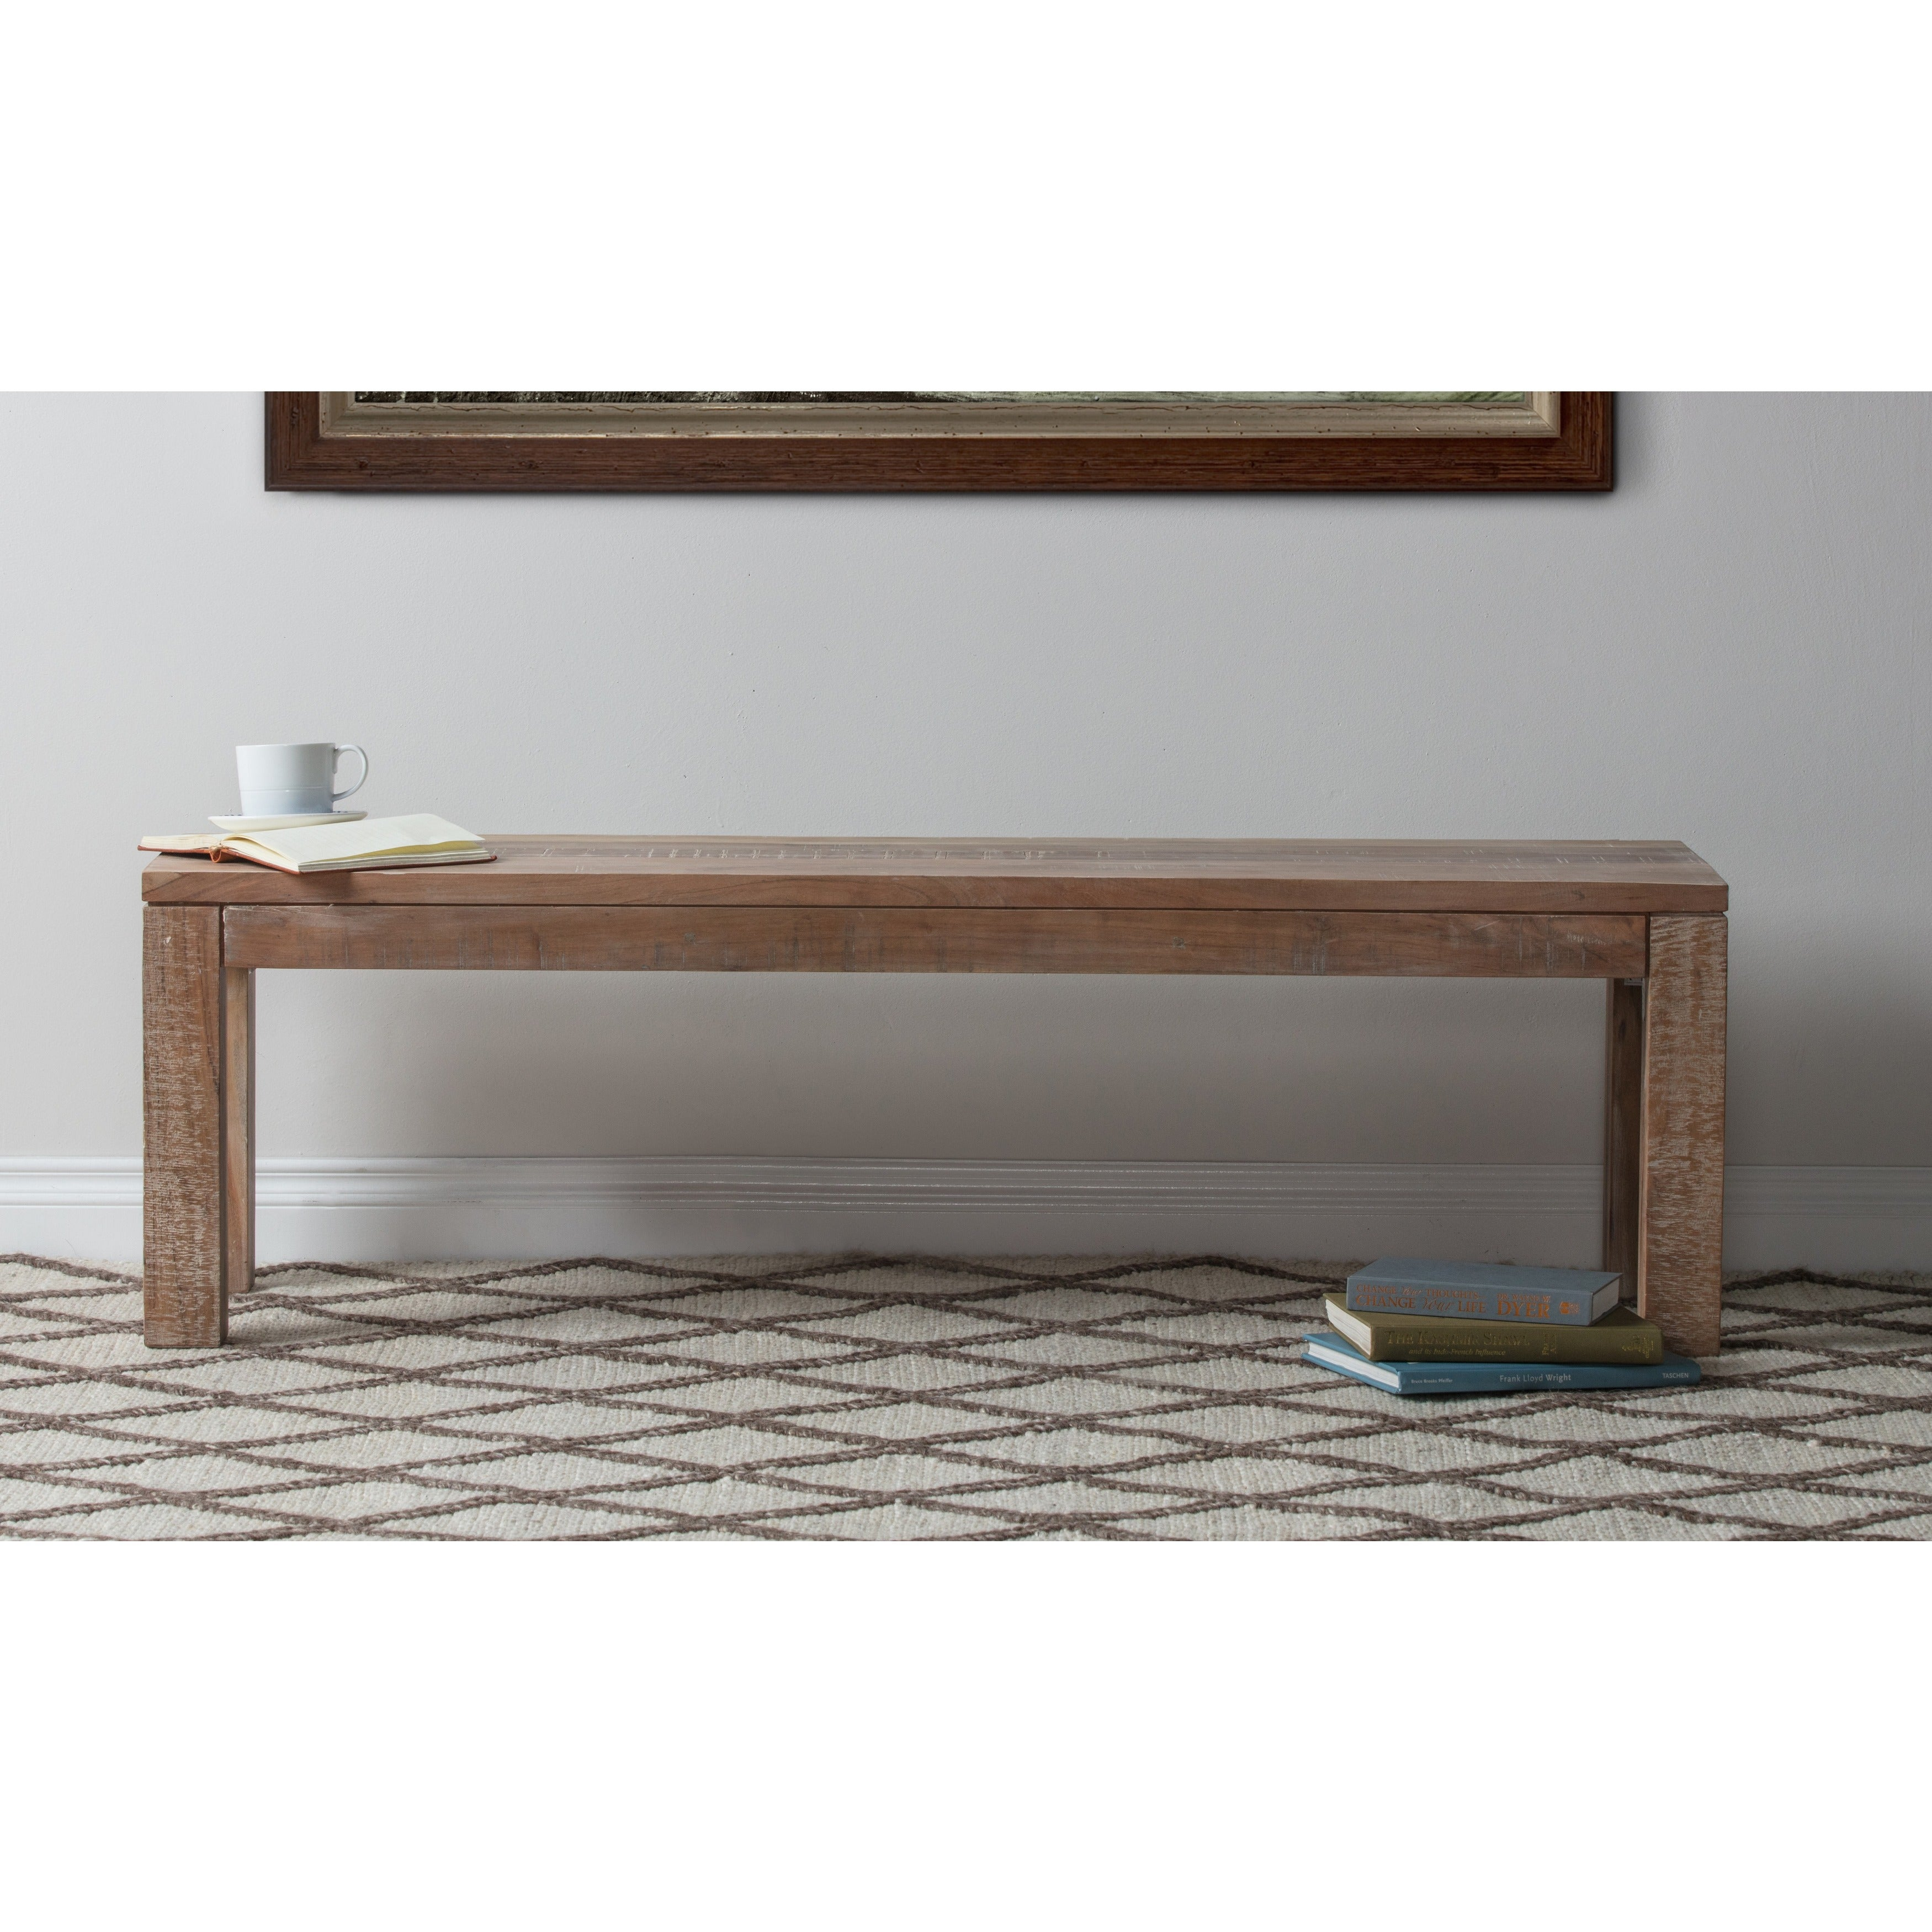 Kosas Collections Hamshire 60-inch Wood Bench